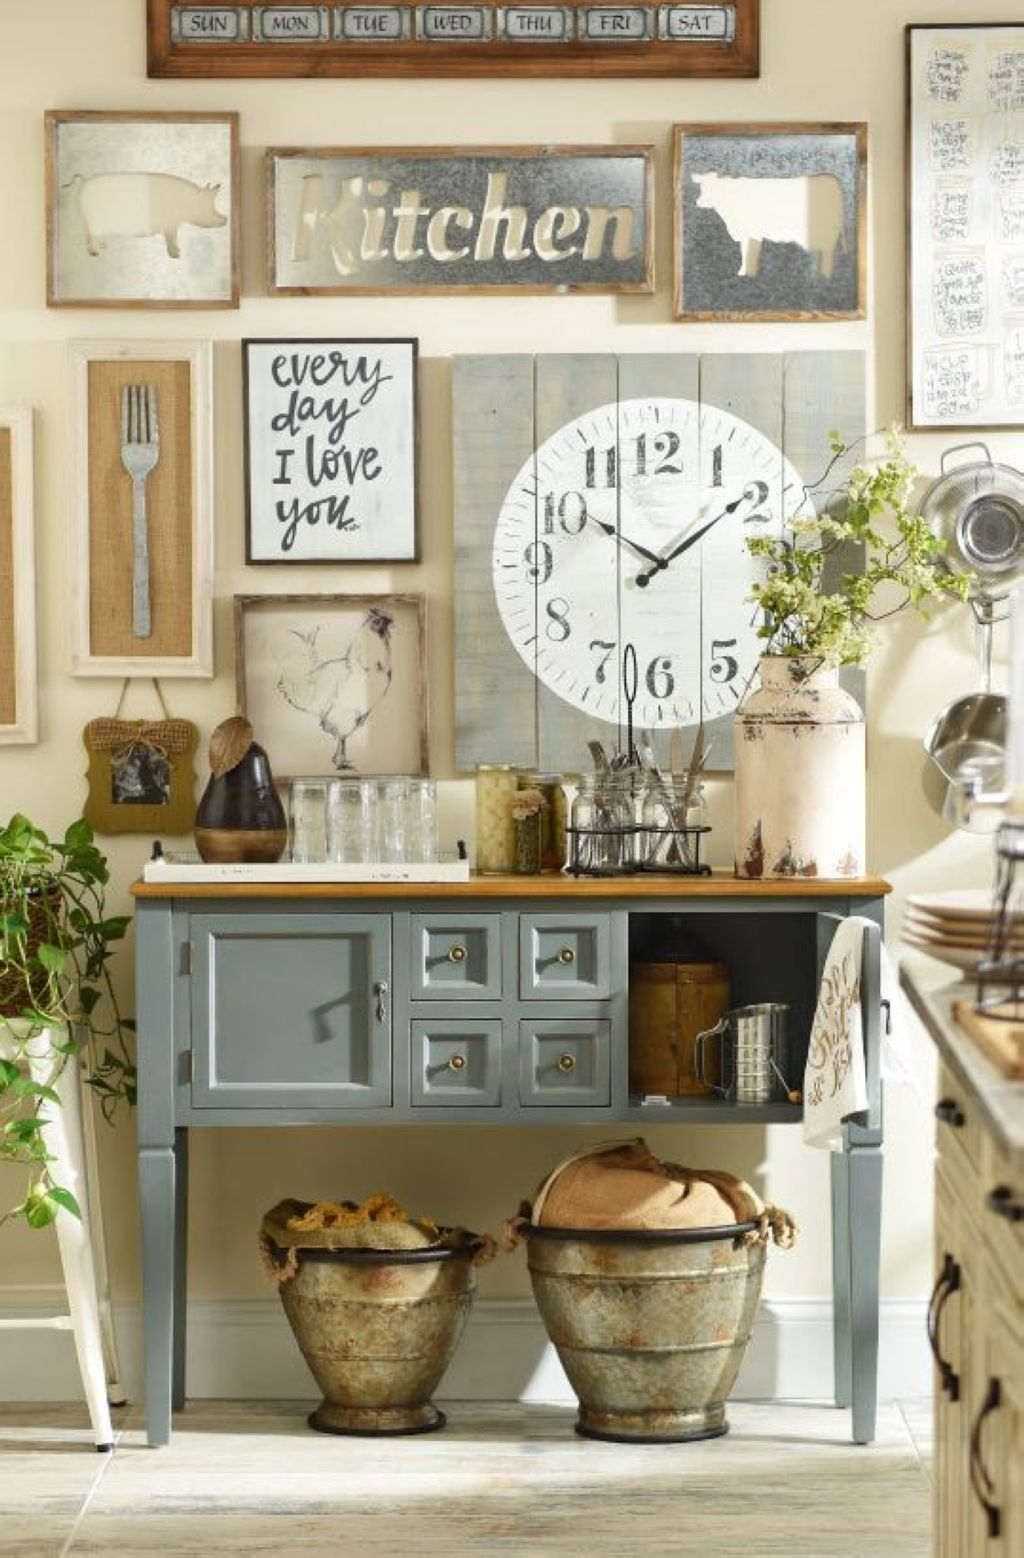 31 DIY Ideas to Add Rustic Farmhouse Feel to your Kitchen | Rustic Super Small Kitchen Designs Rustic Farmhouse on